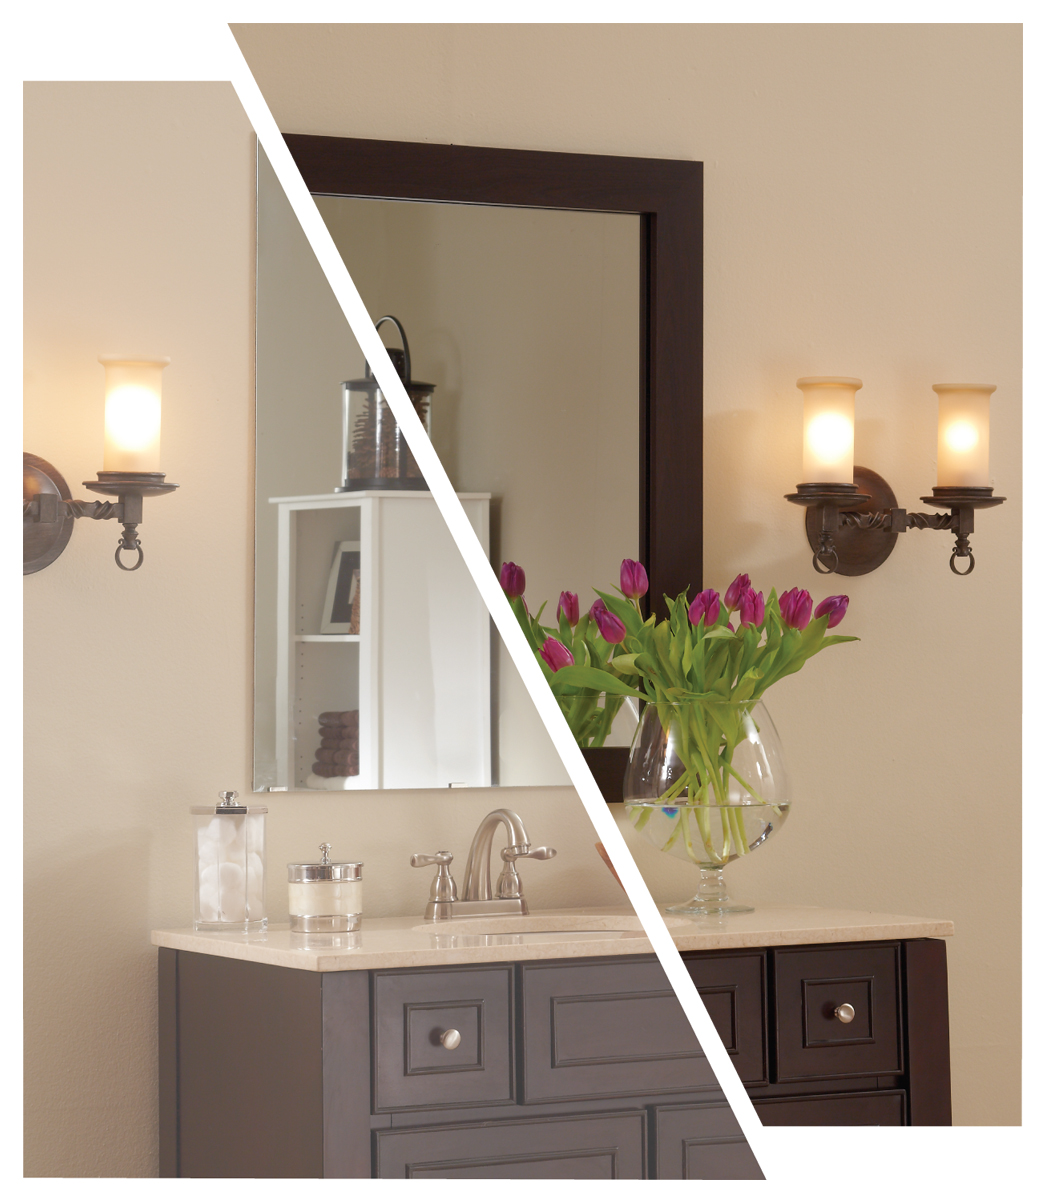 Mirrormate review and giveaway house of jade interiors blog - Mirror frame kits for bathroom mirrors ...